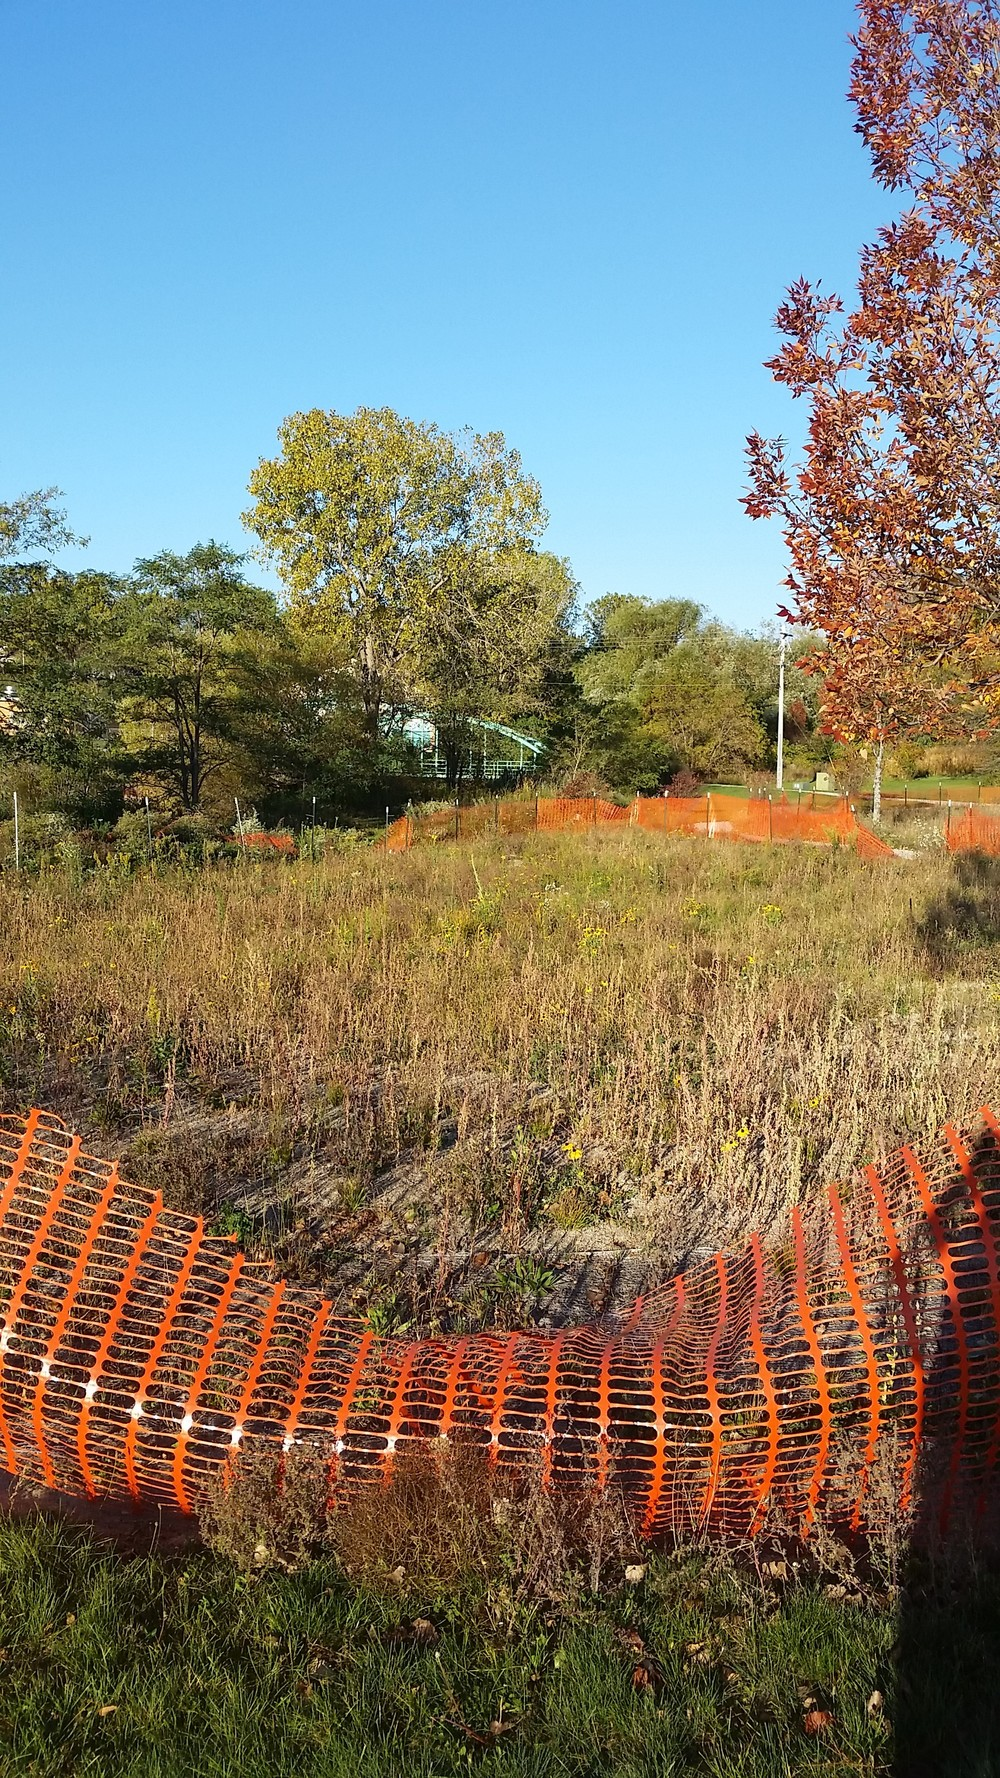 A large rain garden at Grant Park captures stormwater, creates habitat and helps maintain the biodiversity of native plant ecosystems.